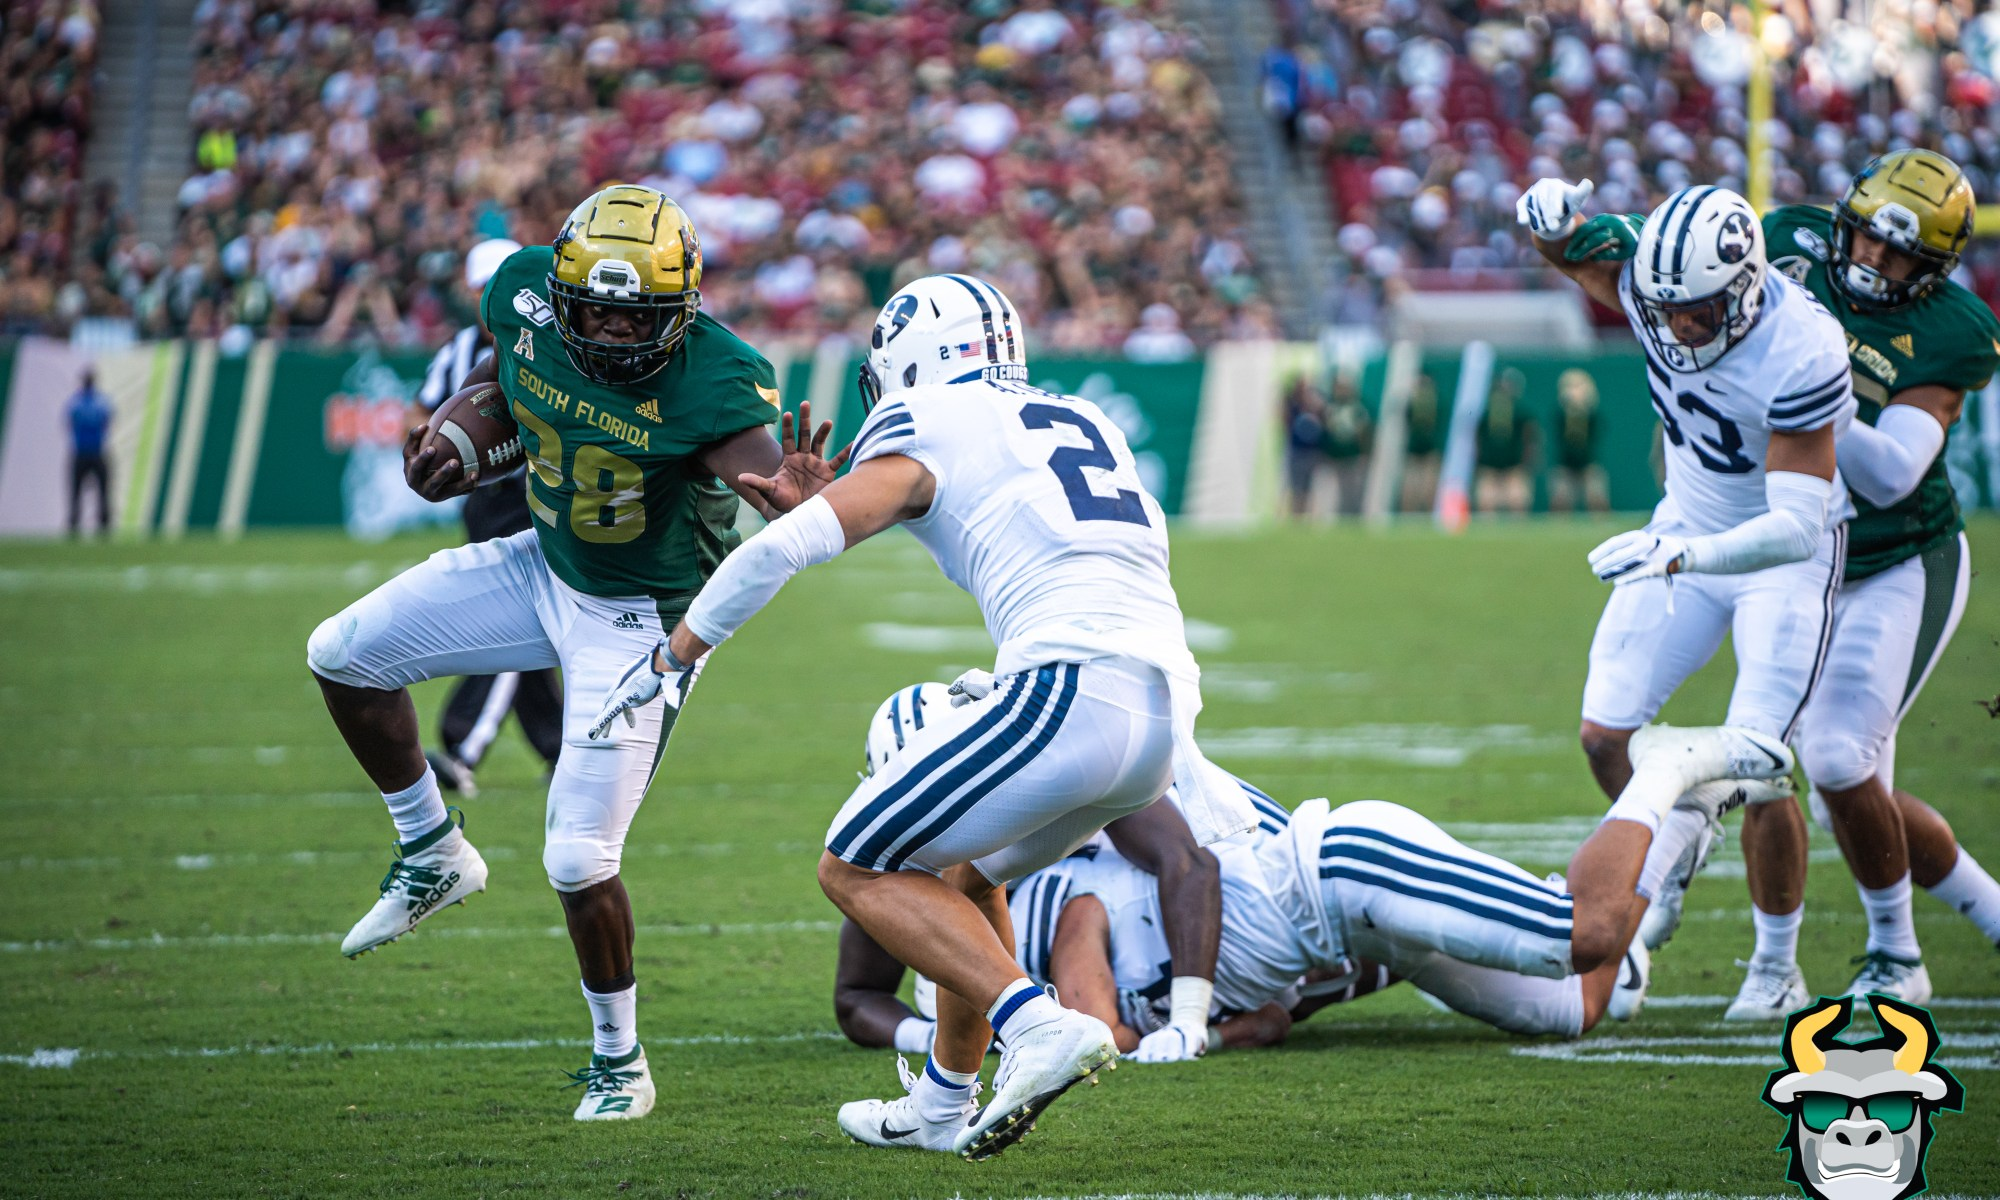 USF RB Sands